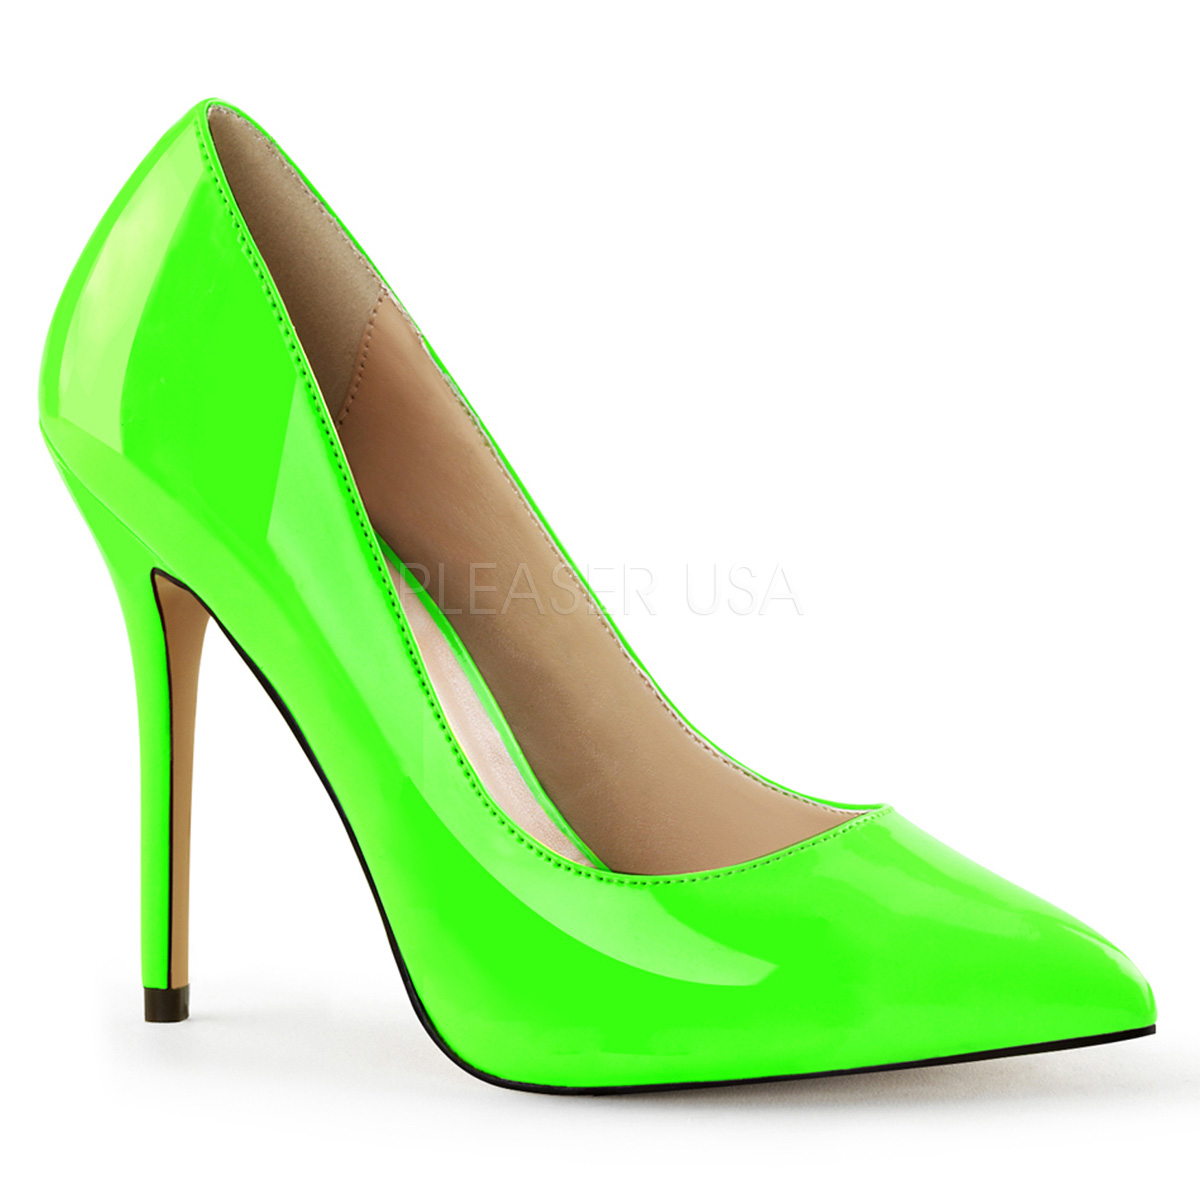 5 Inch Stiletto Heel Pump